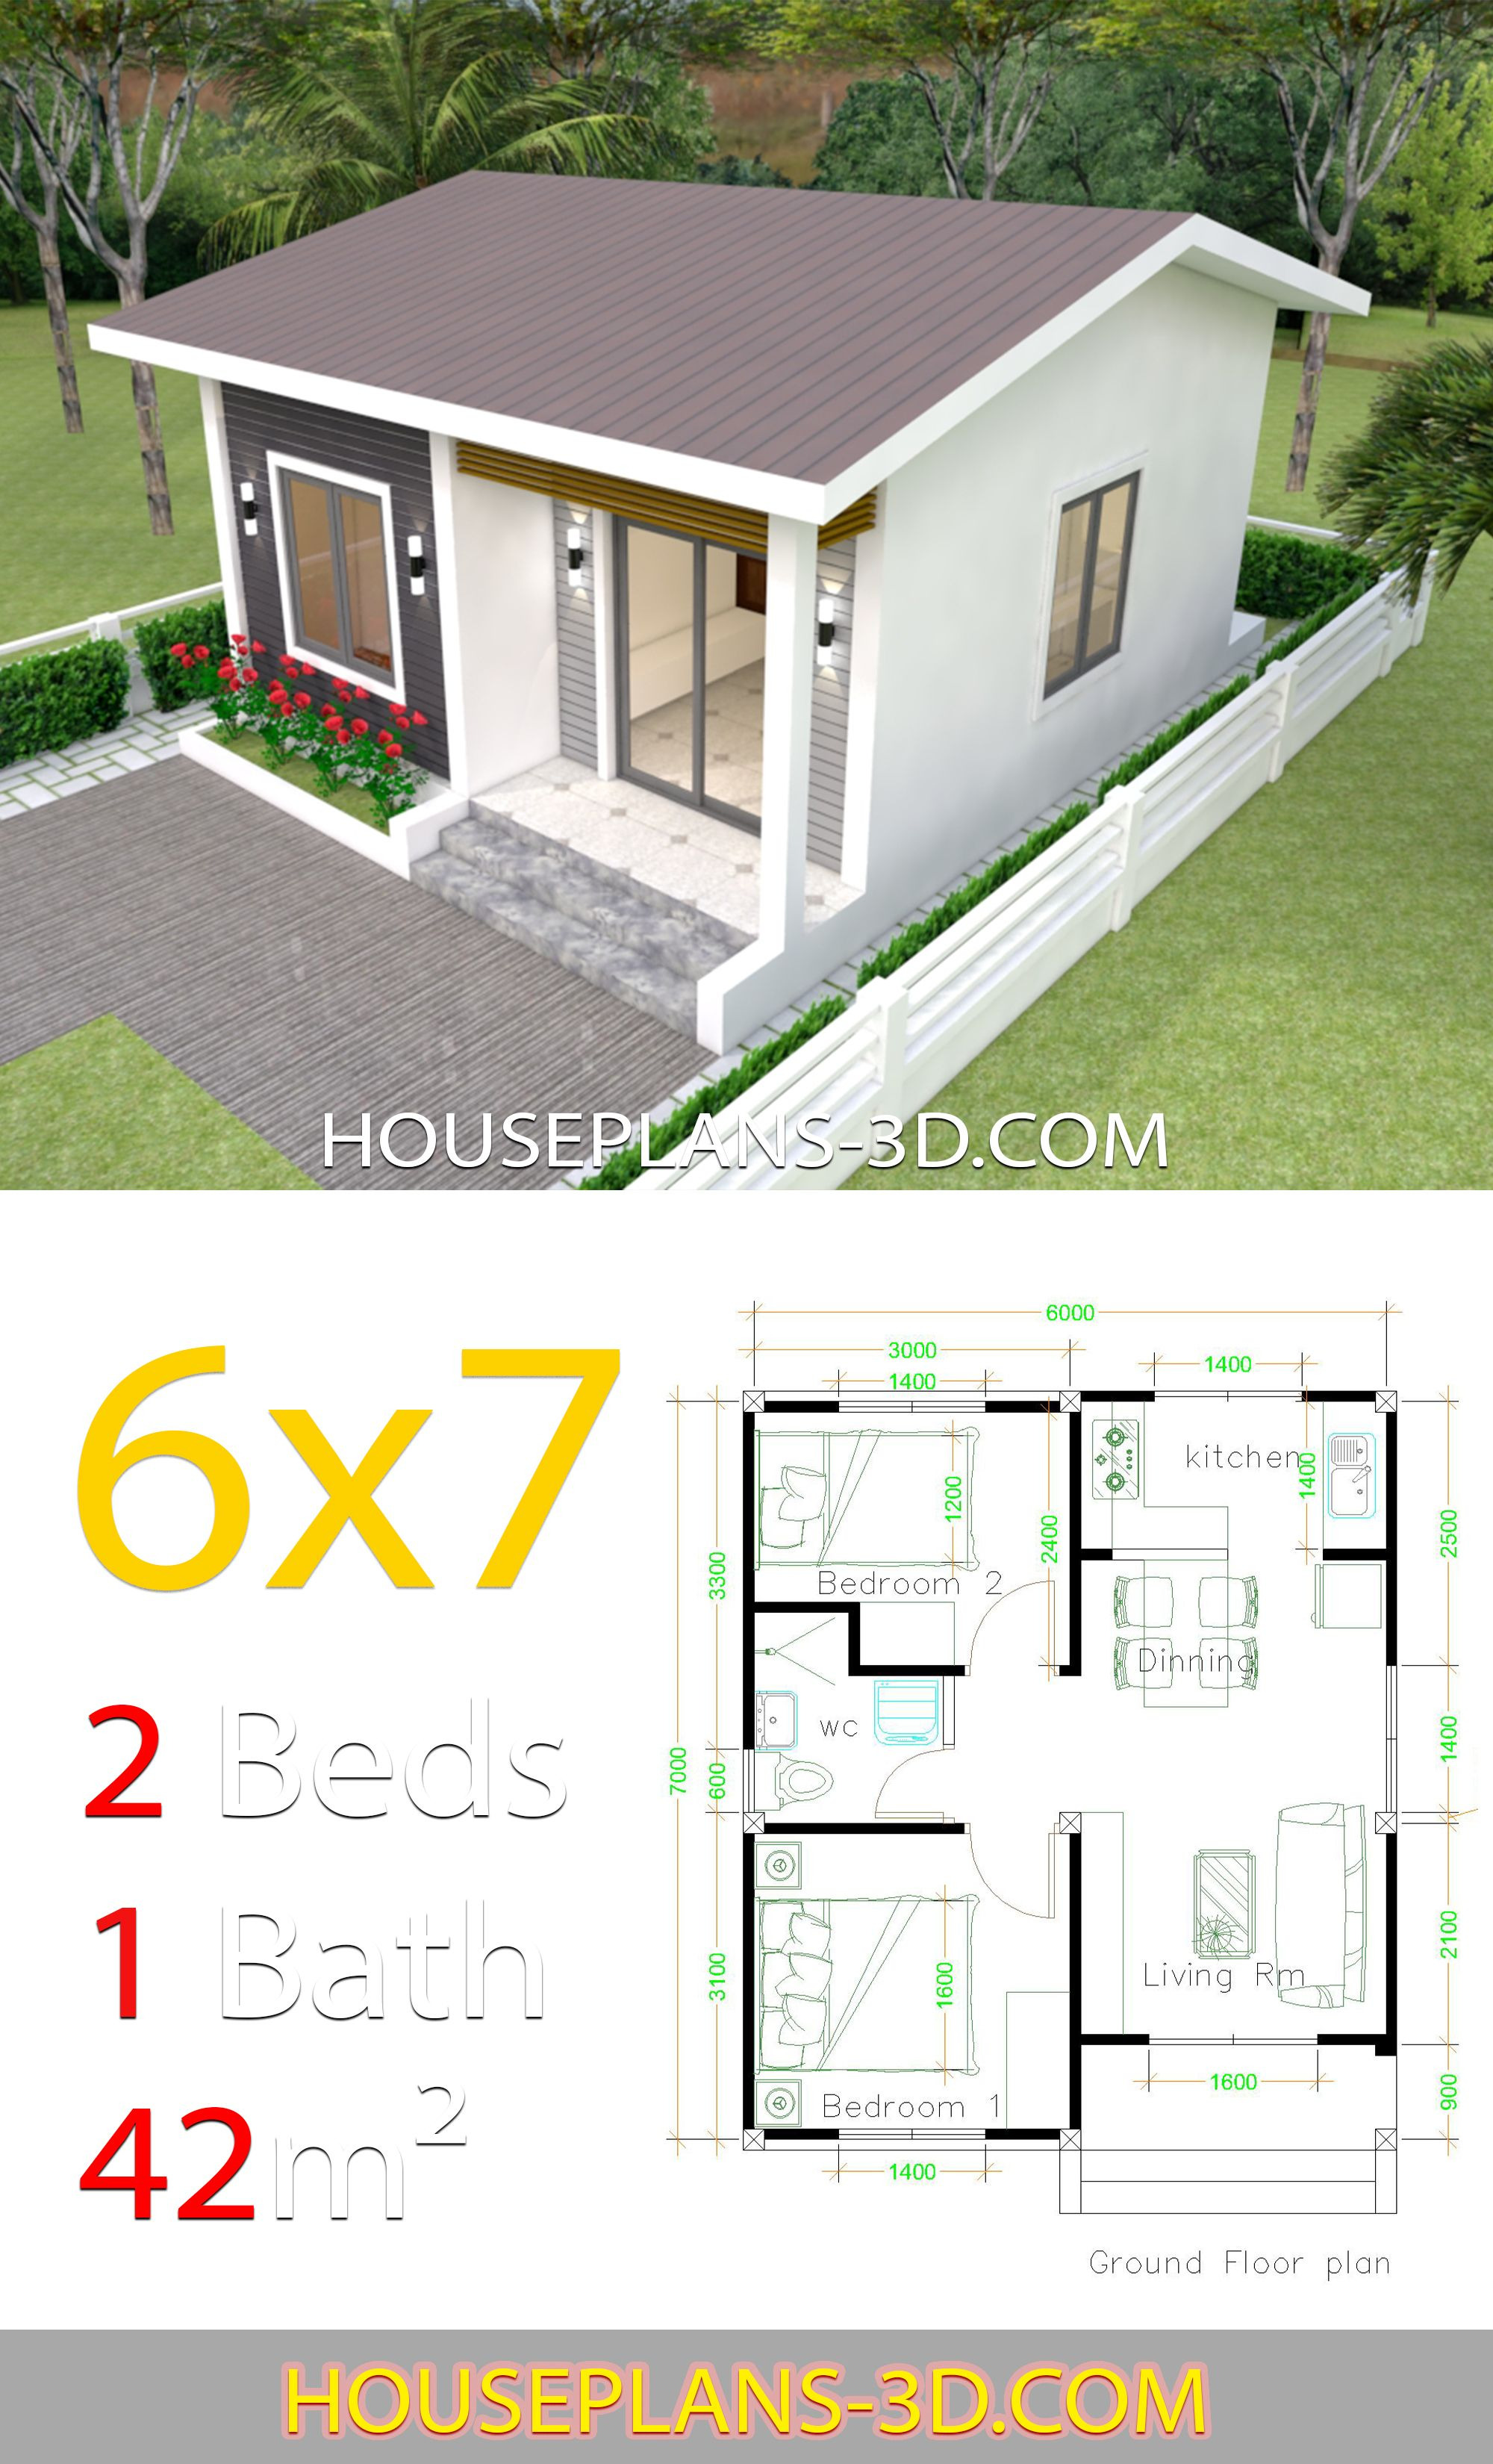 Two Bedroom House Plan Designs Awesome House Design 6x7 with 2 Bedrooms